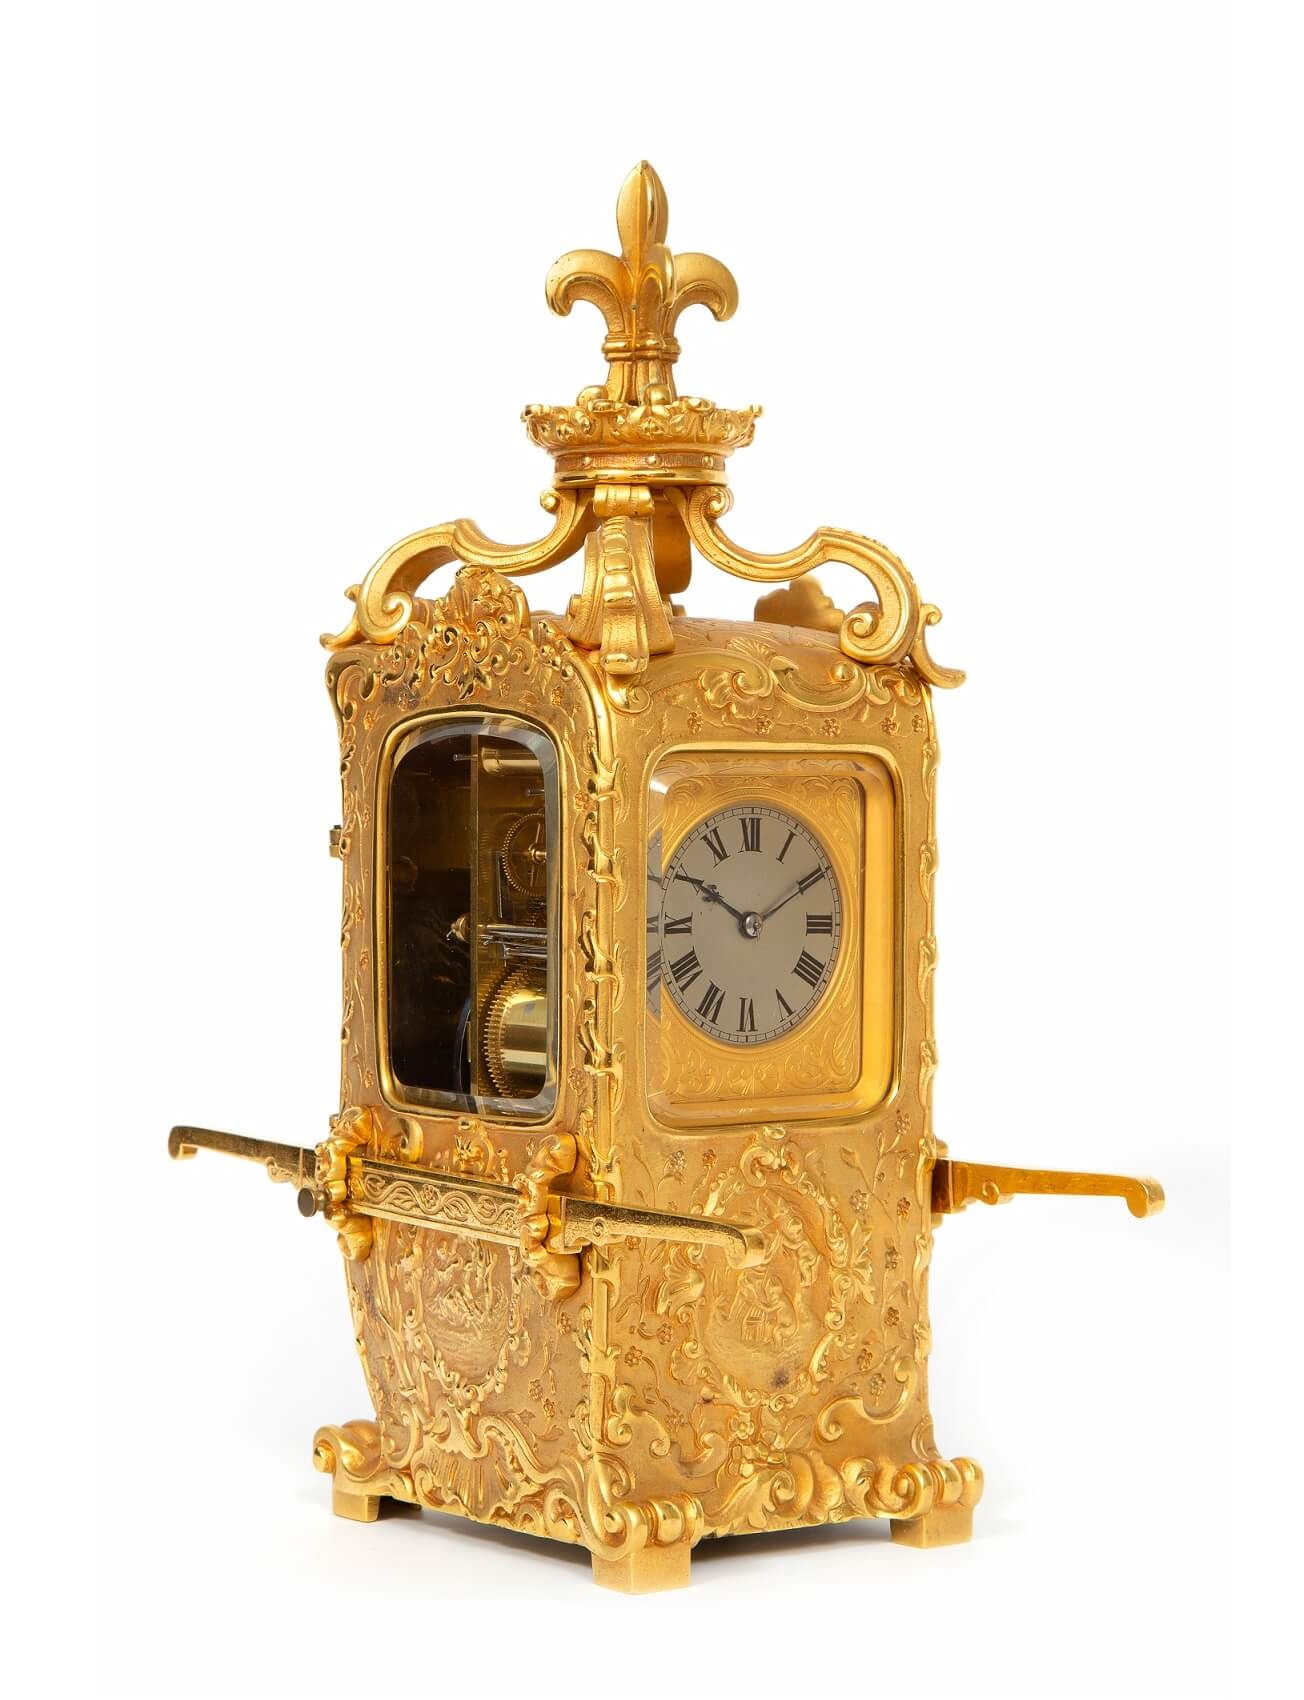 French Rococo Gilt Brass Sedan Carriage Antique Clock Striking 2th